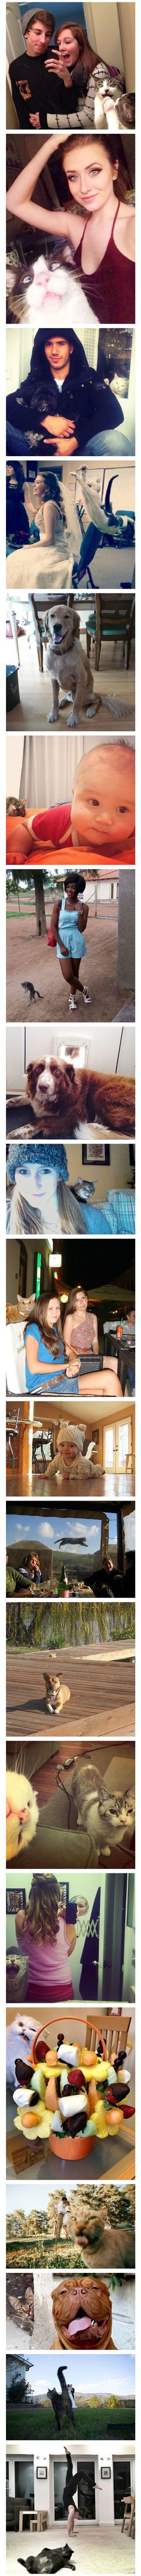 Proof that cats have a sense of Humor Cat Photobombs To Make You Smile - MyFunnyPalace